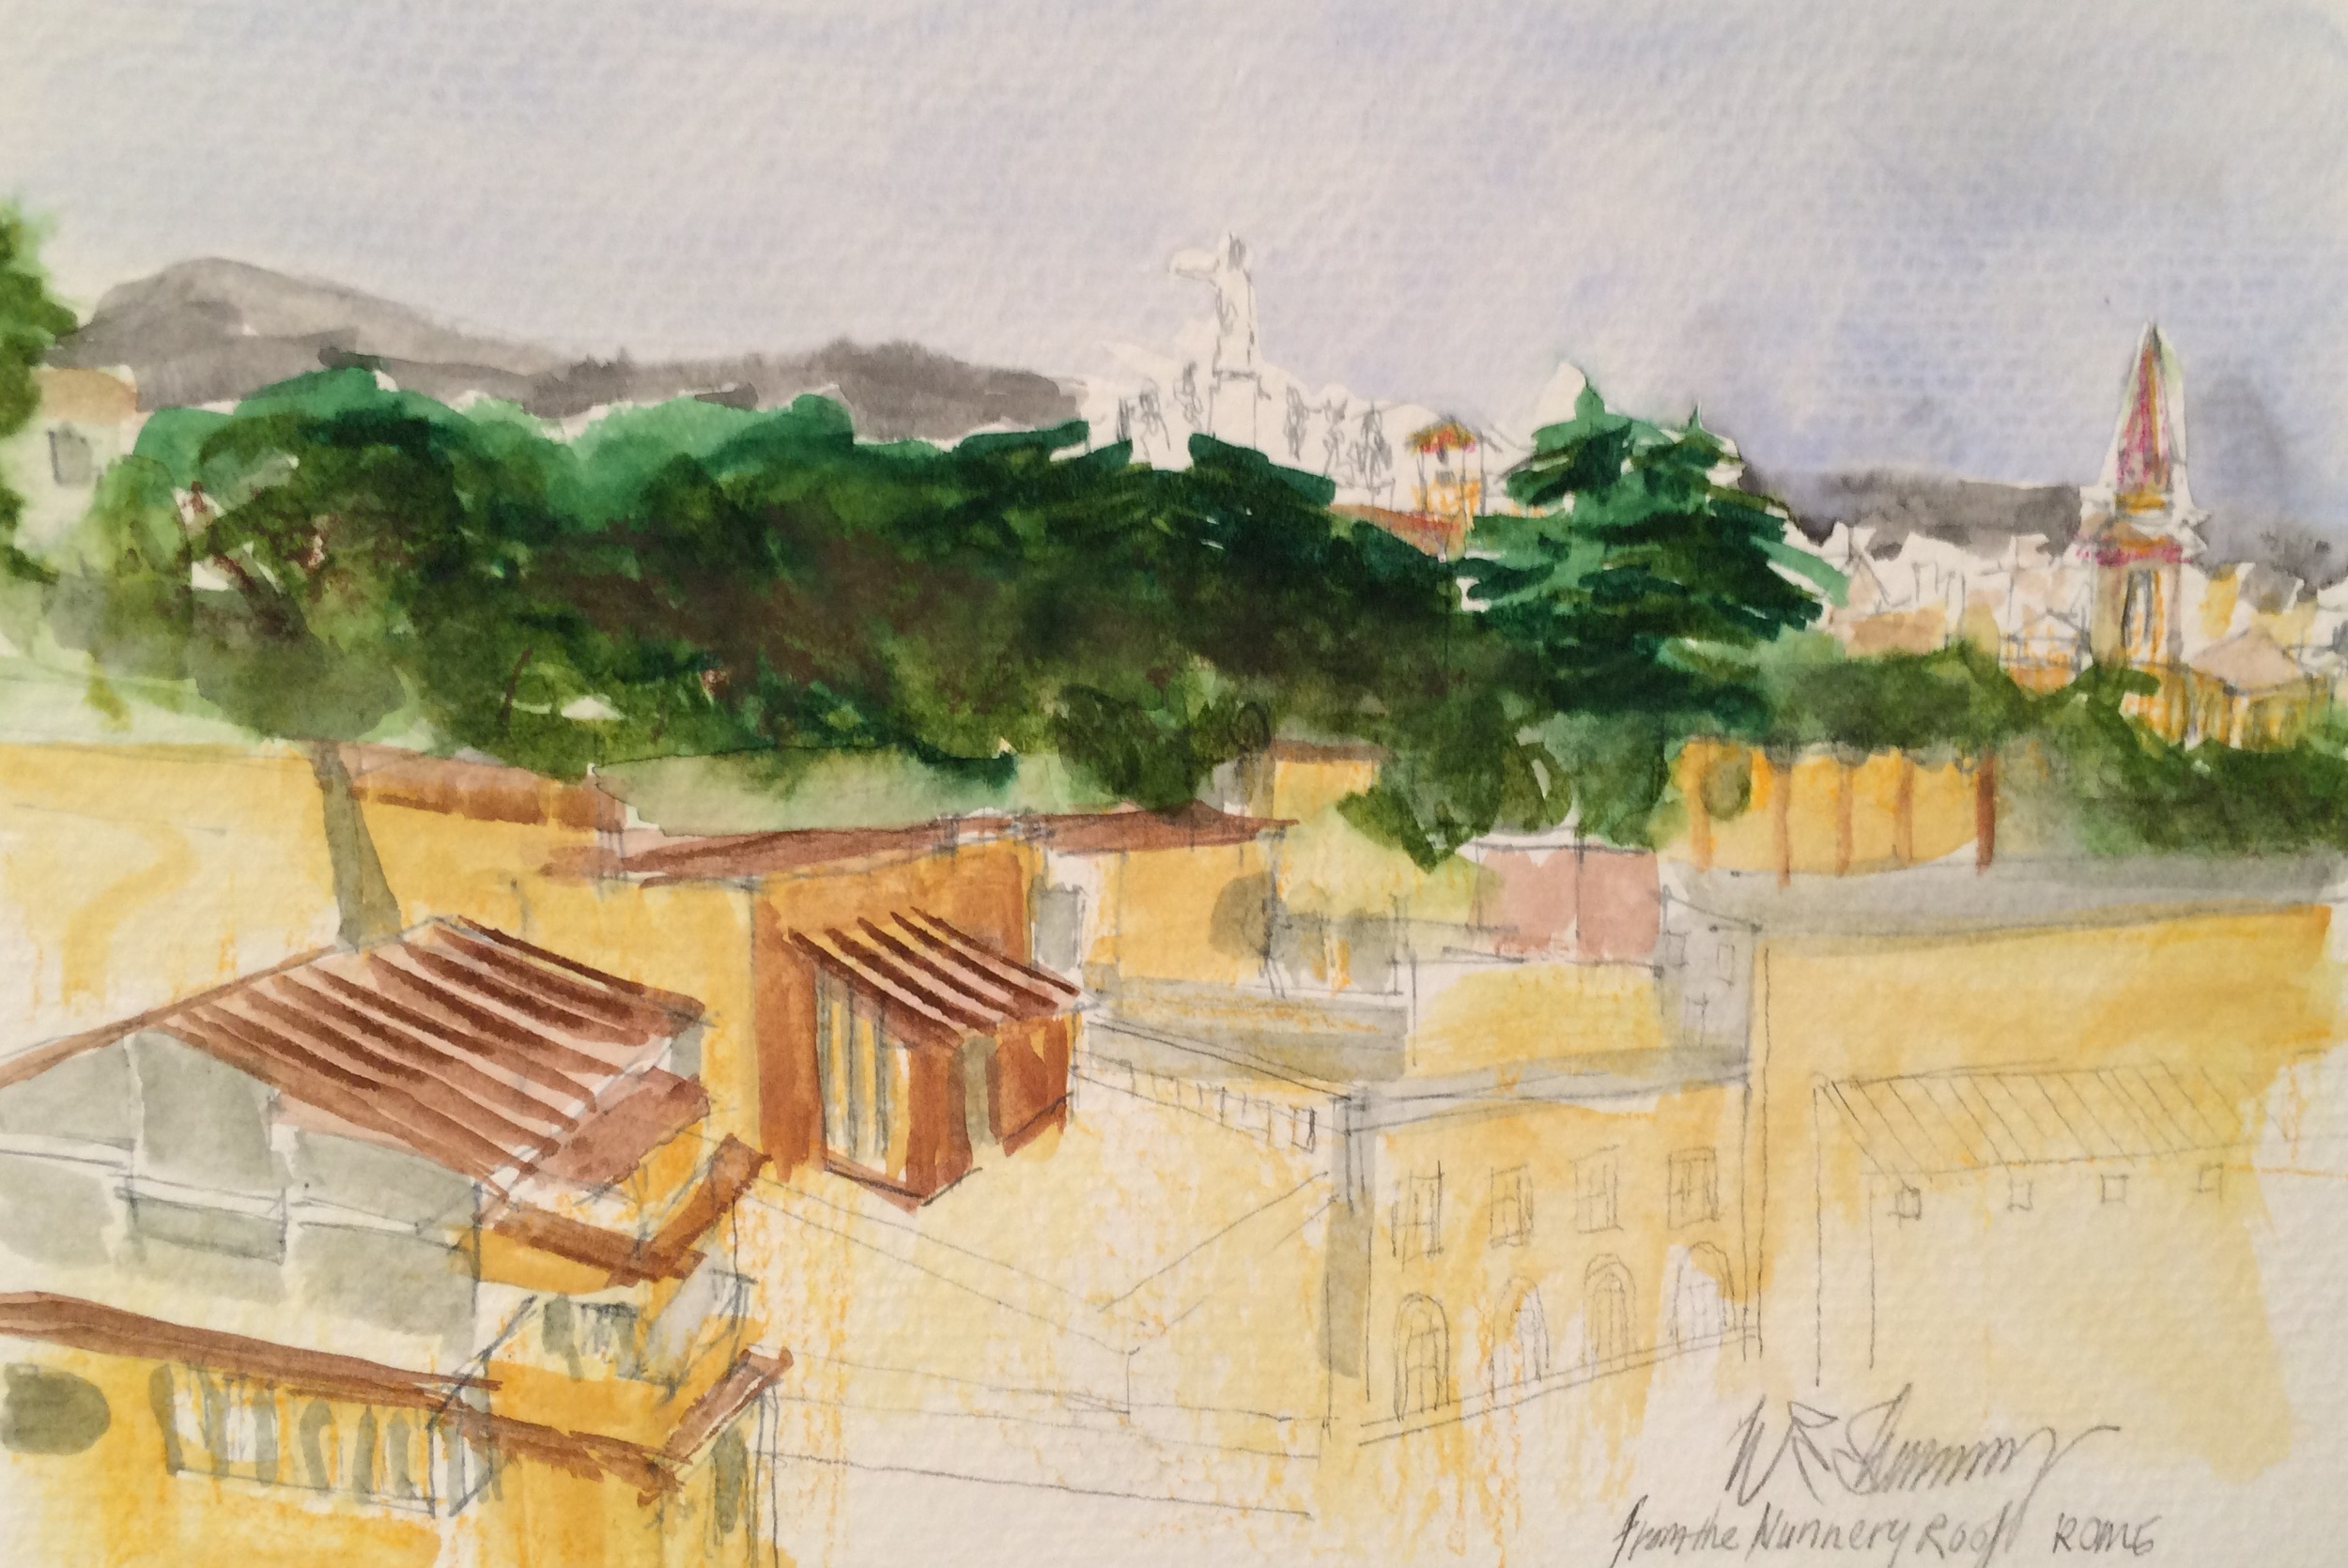 Rome from the Nunnery